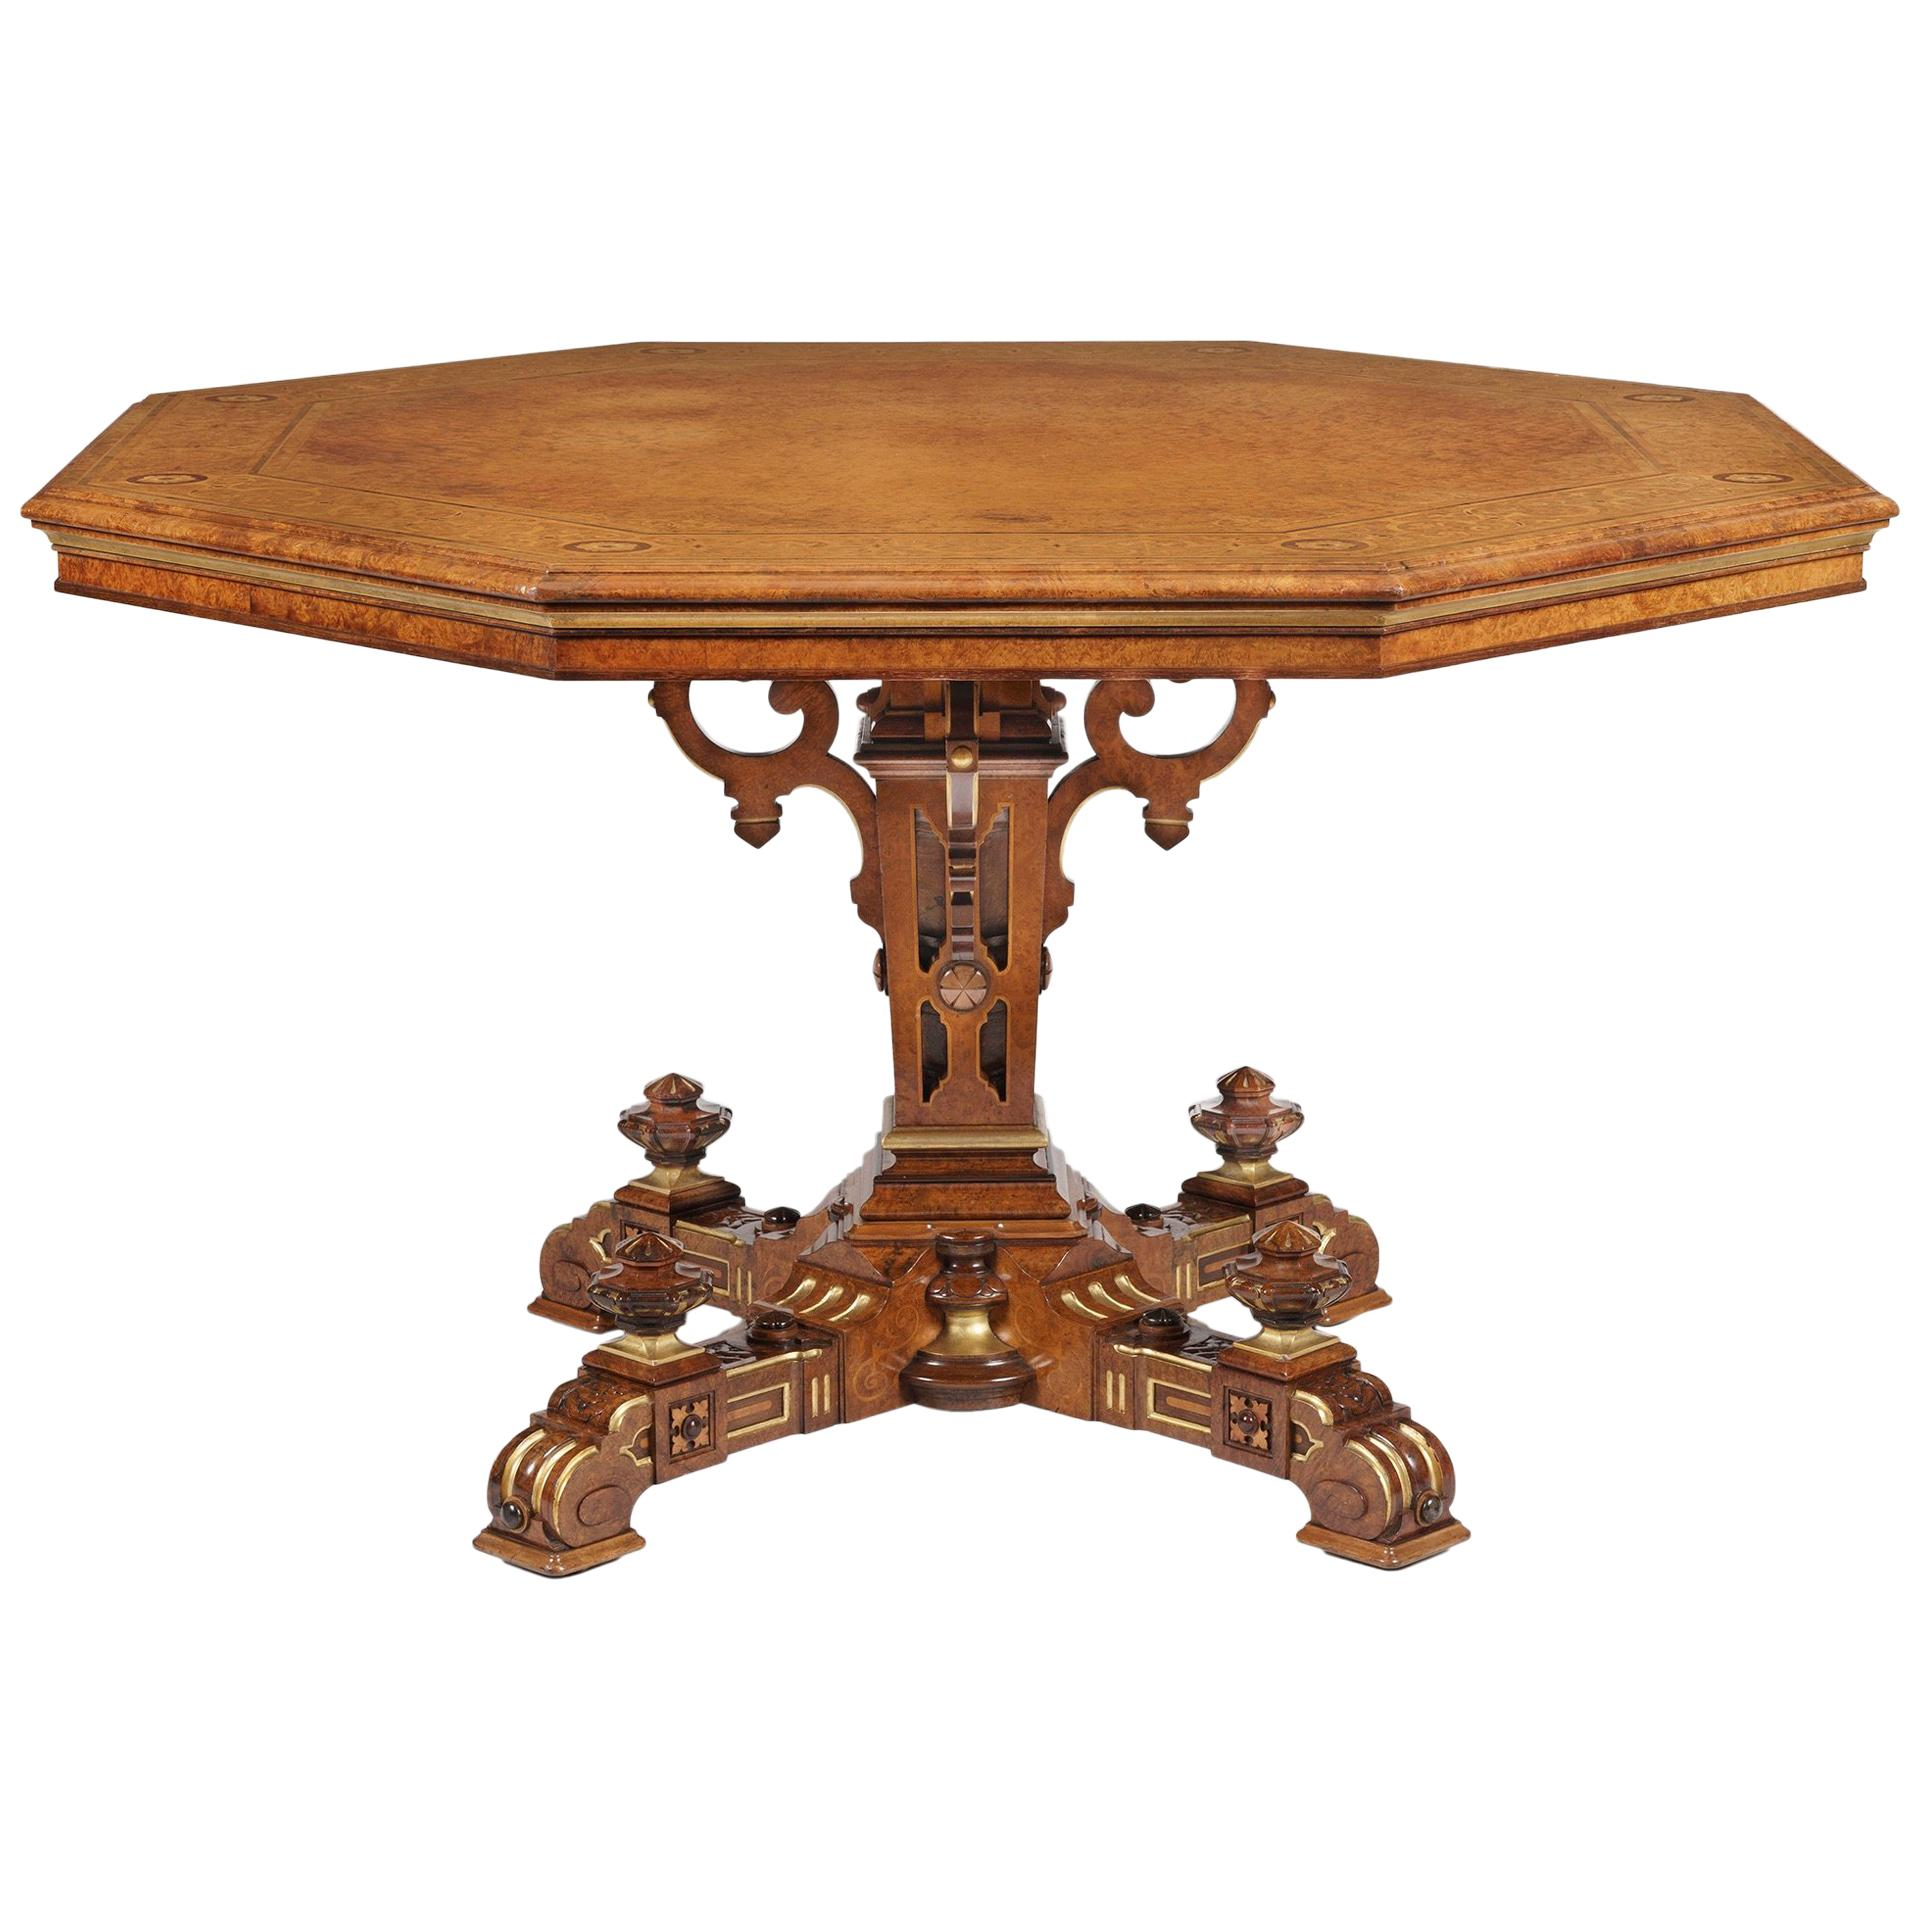 Mid-19th Century Amboyna Octagonal Centre Table